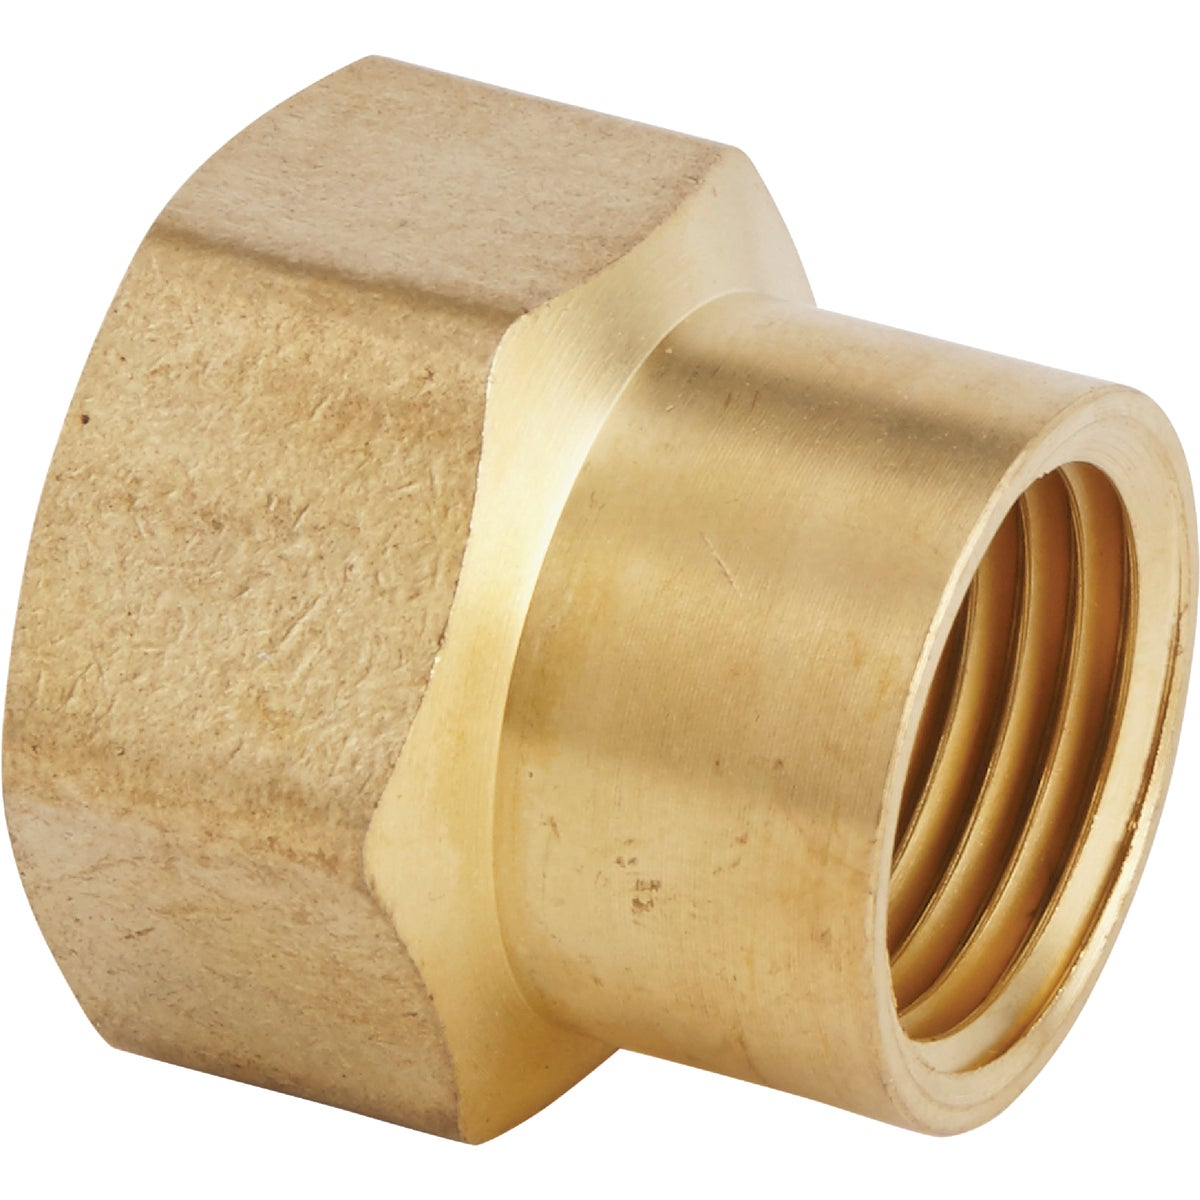 BRASS CONNECTOR - DIB5FP7FH by Bosch G W